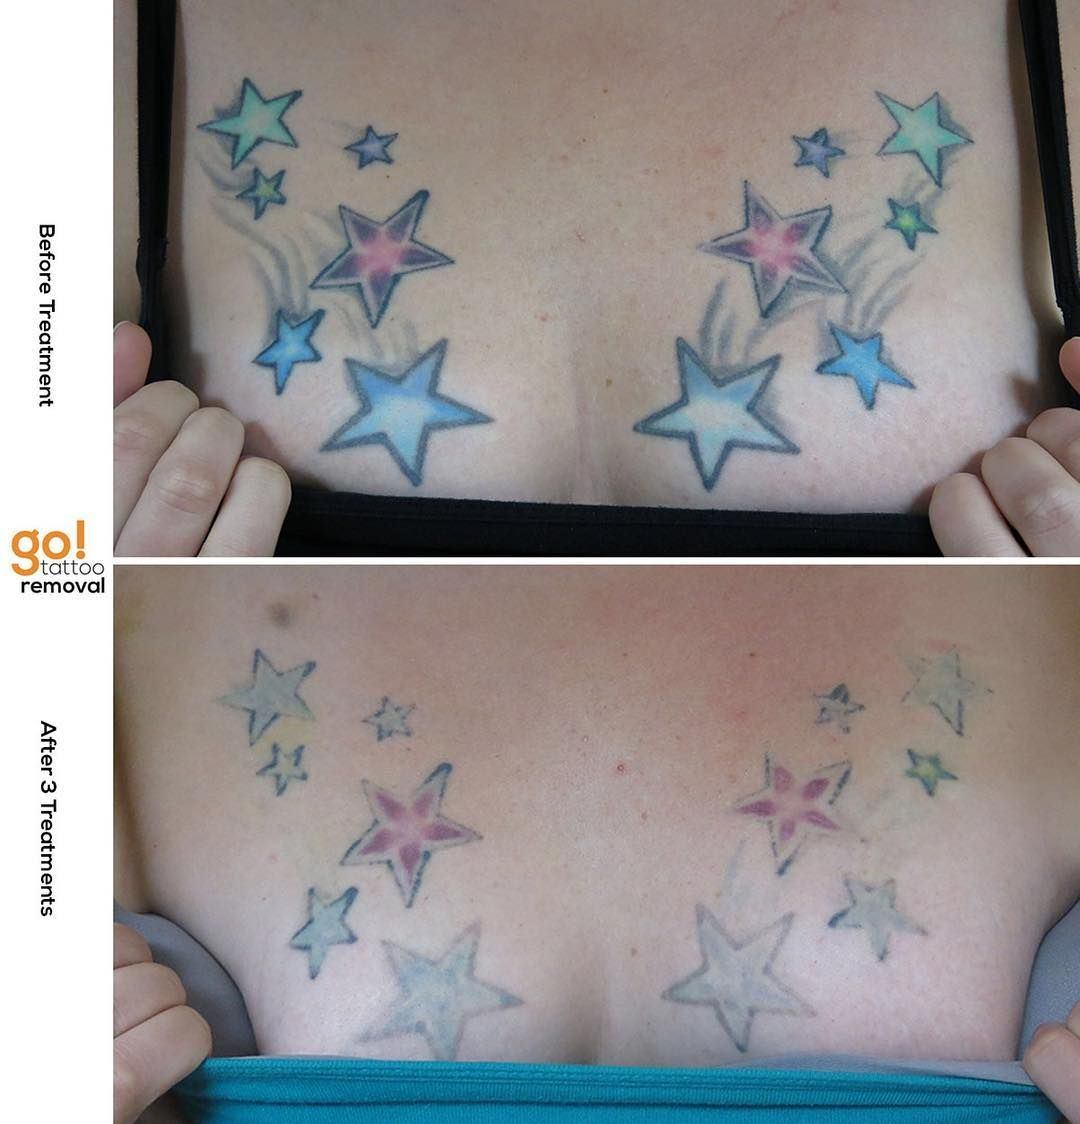 This Is Treated As One Tattoo Not 12 Individual Stars Or By The Square Inch And We Re Using Both Picosure And Qs Lasers To Laser Tattoo Tattoo Removal Tattoos